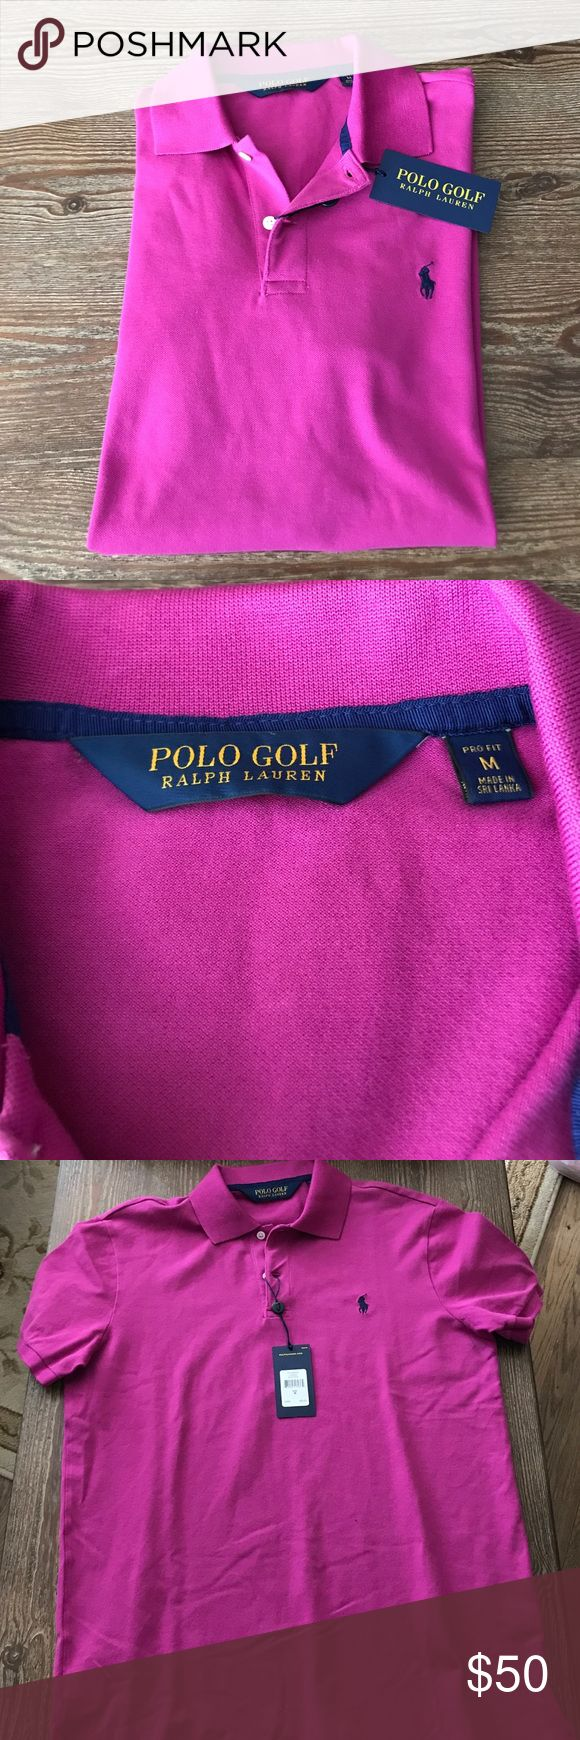 NWT Polo Golf Shirt New with tags. Size M. Pro fit. Armpit to armpit 21 inches length 28 inches. Beautiful purple color green collar  blue polo sign. No Trades, cross posted! Polo by Ralph Lauren Tops